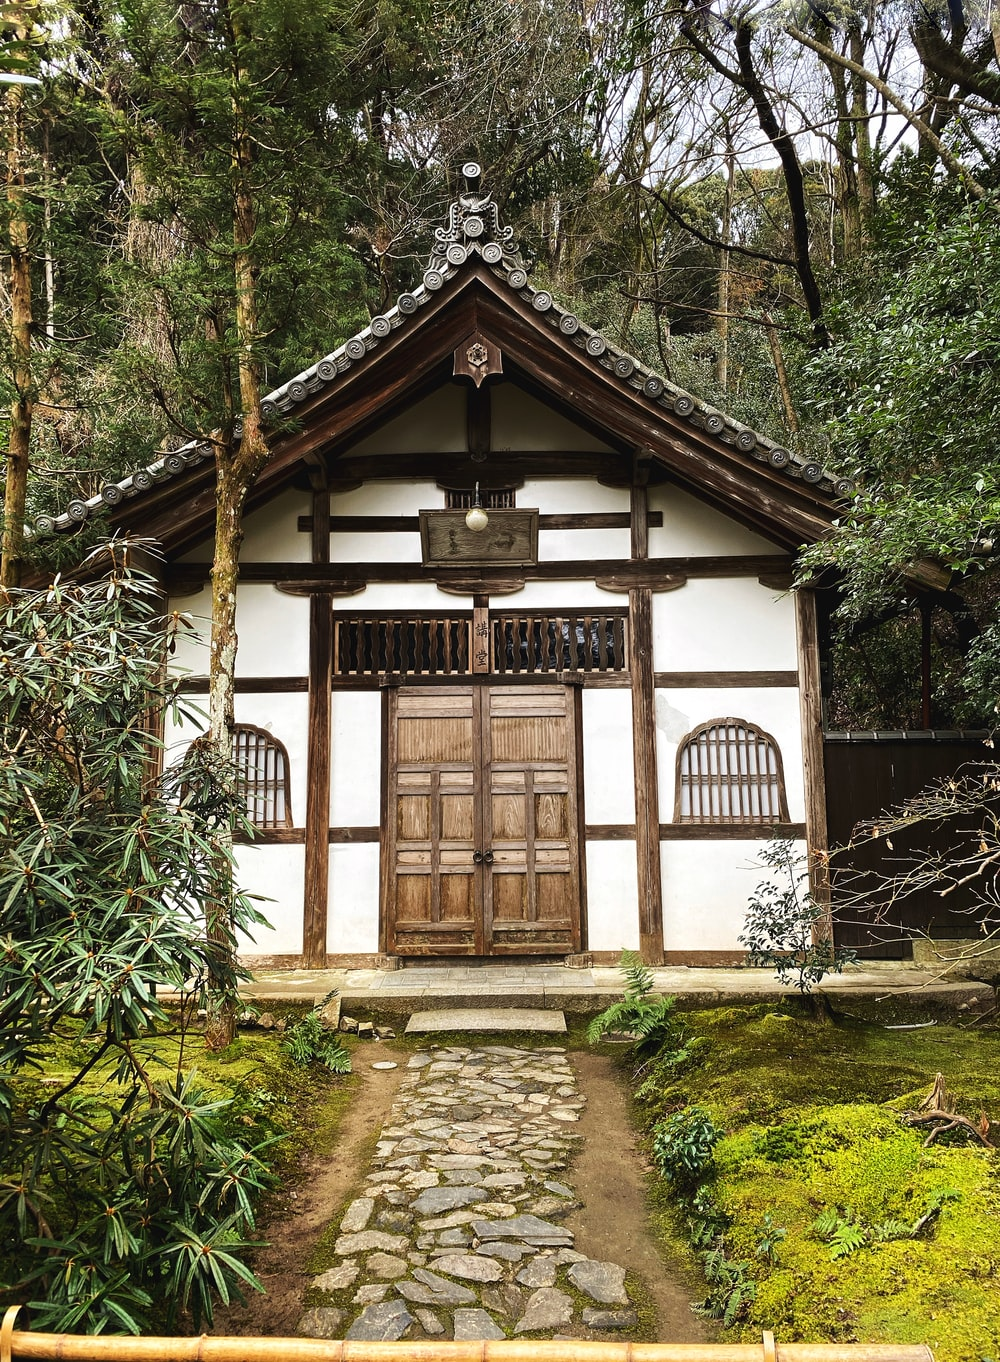 white and brown wooden house surrounded by green plants